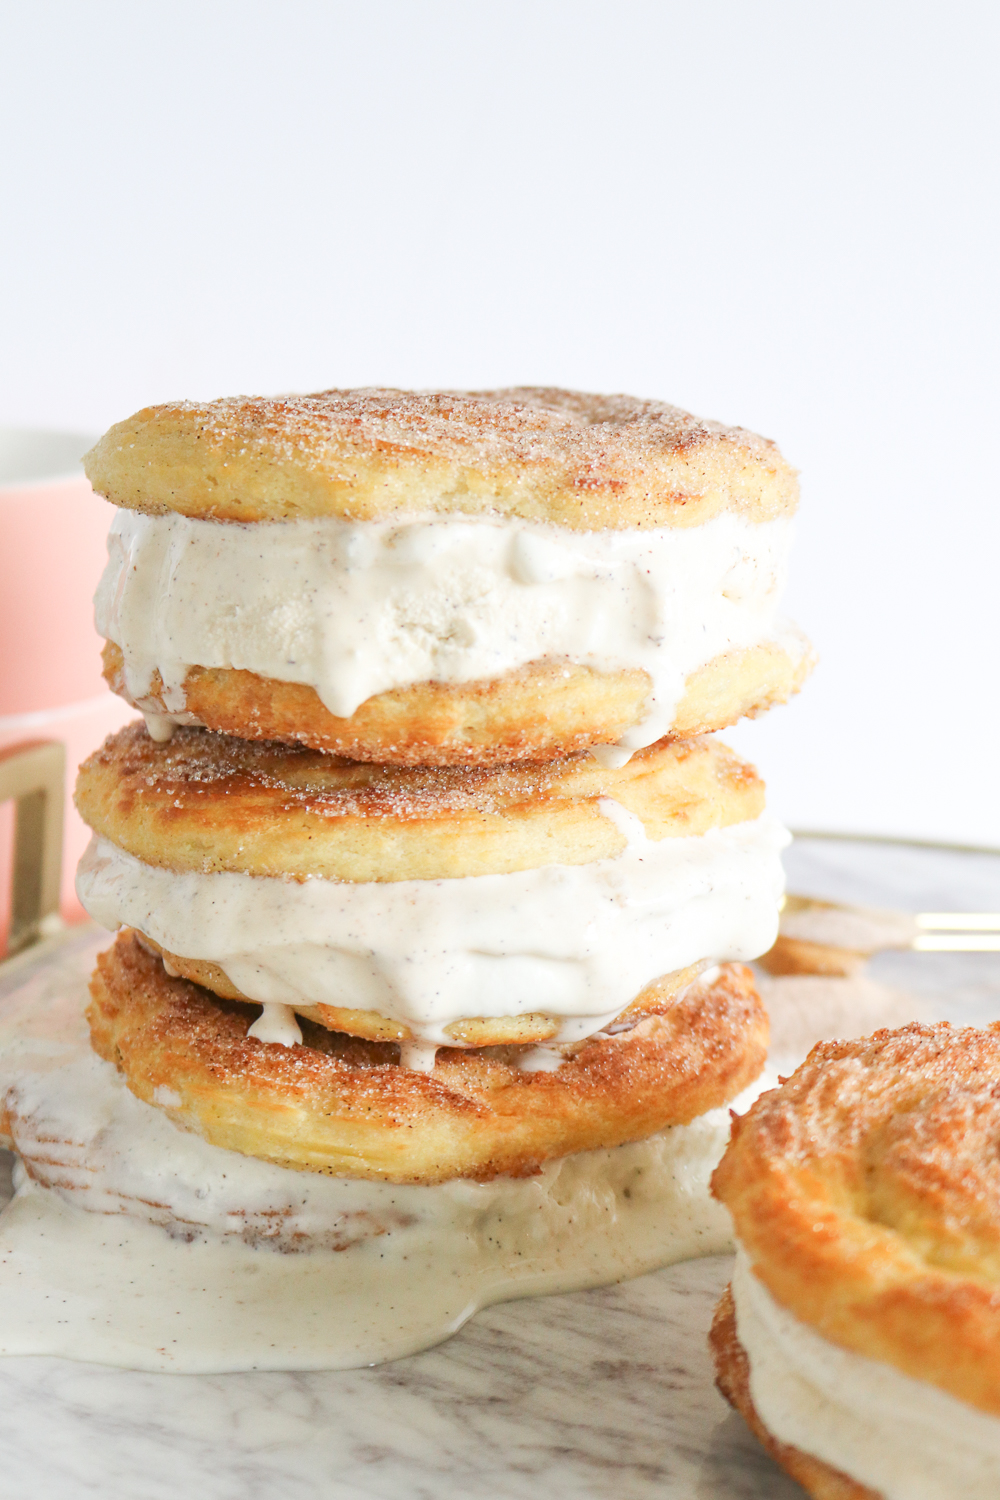 Baked Churro Ice Cream Sandwiches | Club Crafted